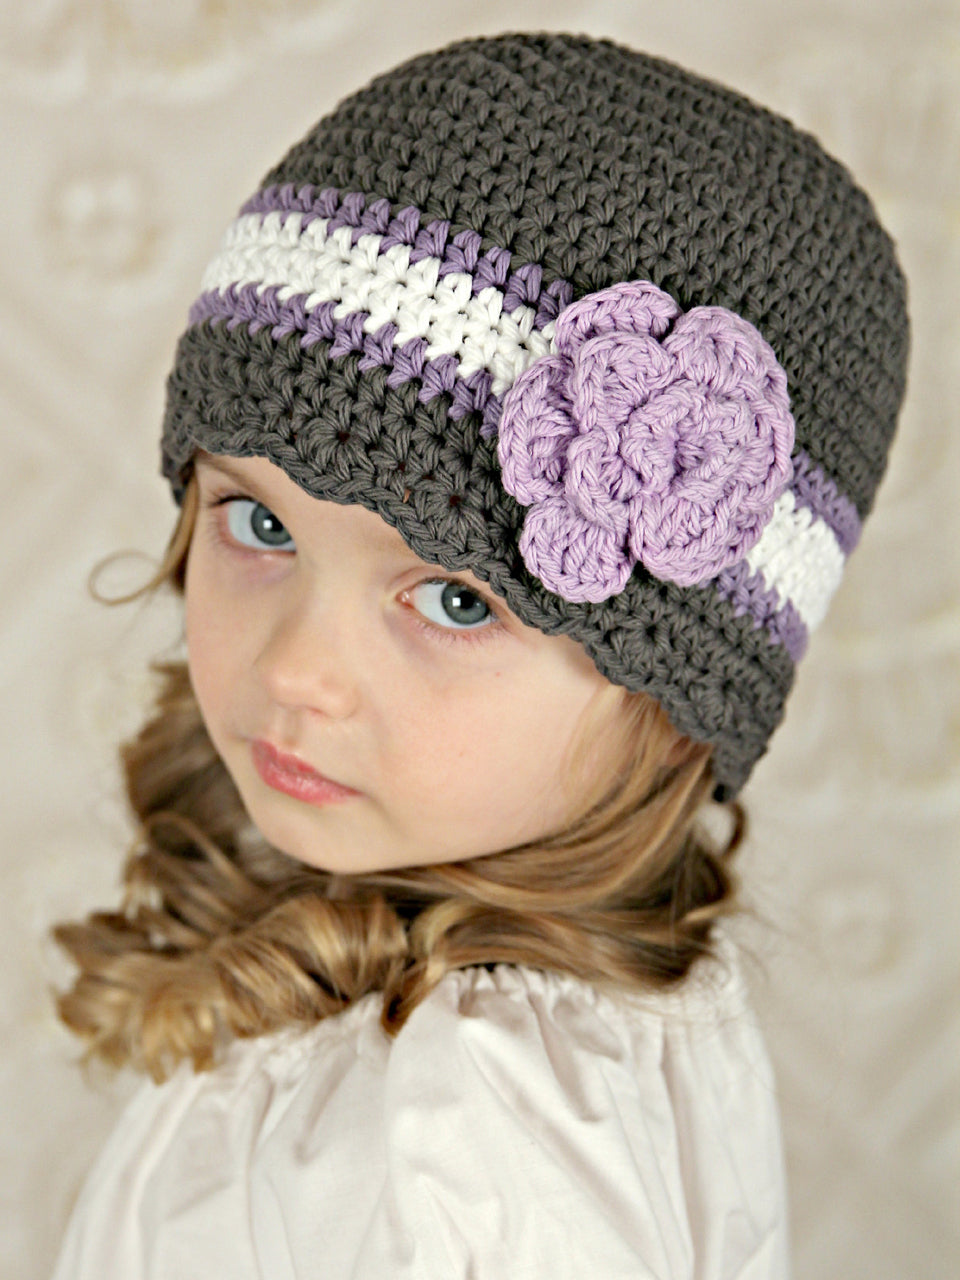 4T to Preteen Elephant Gray, Grape, White, & Lavender Striped Flapper Beanie by Two Seaside Babes